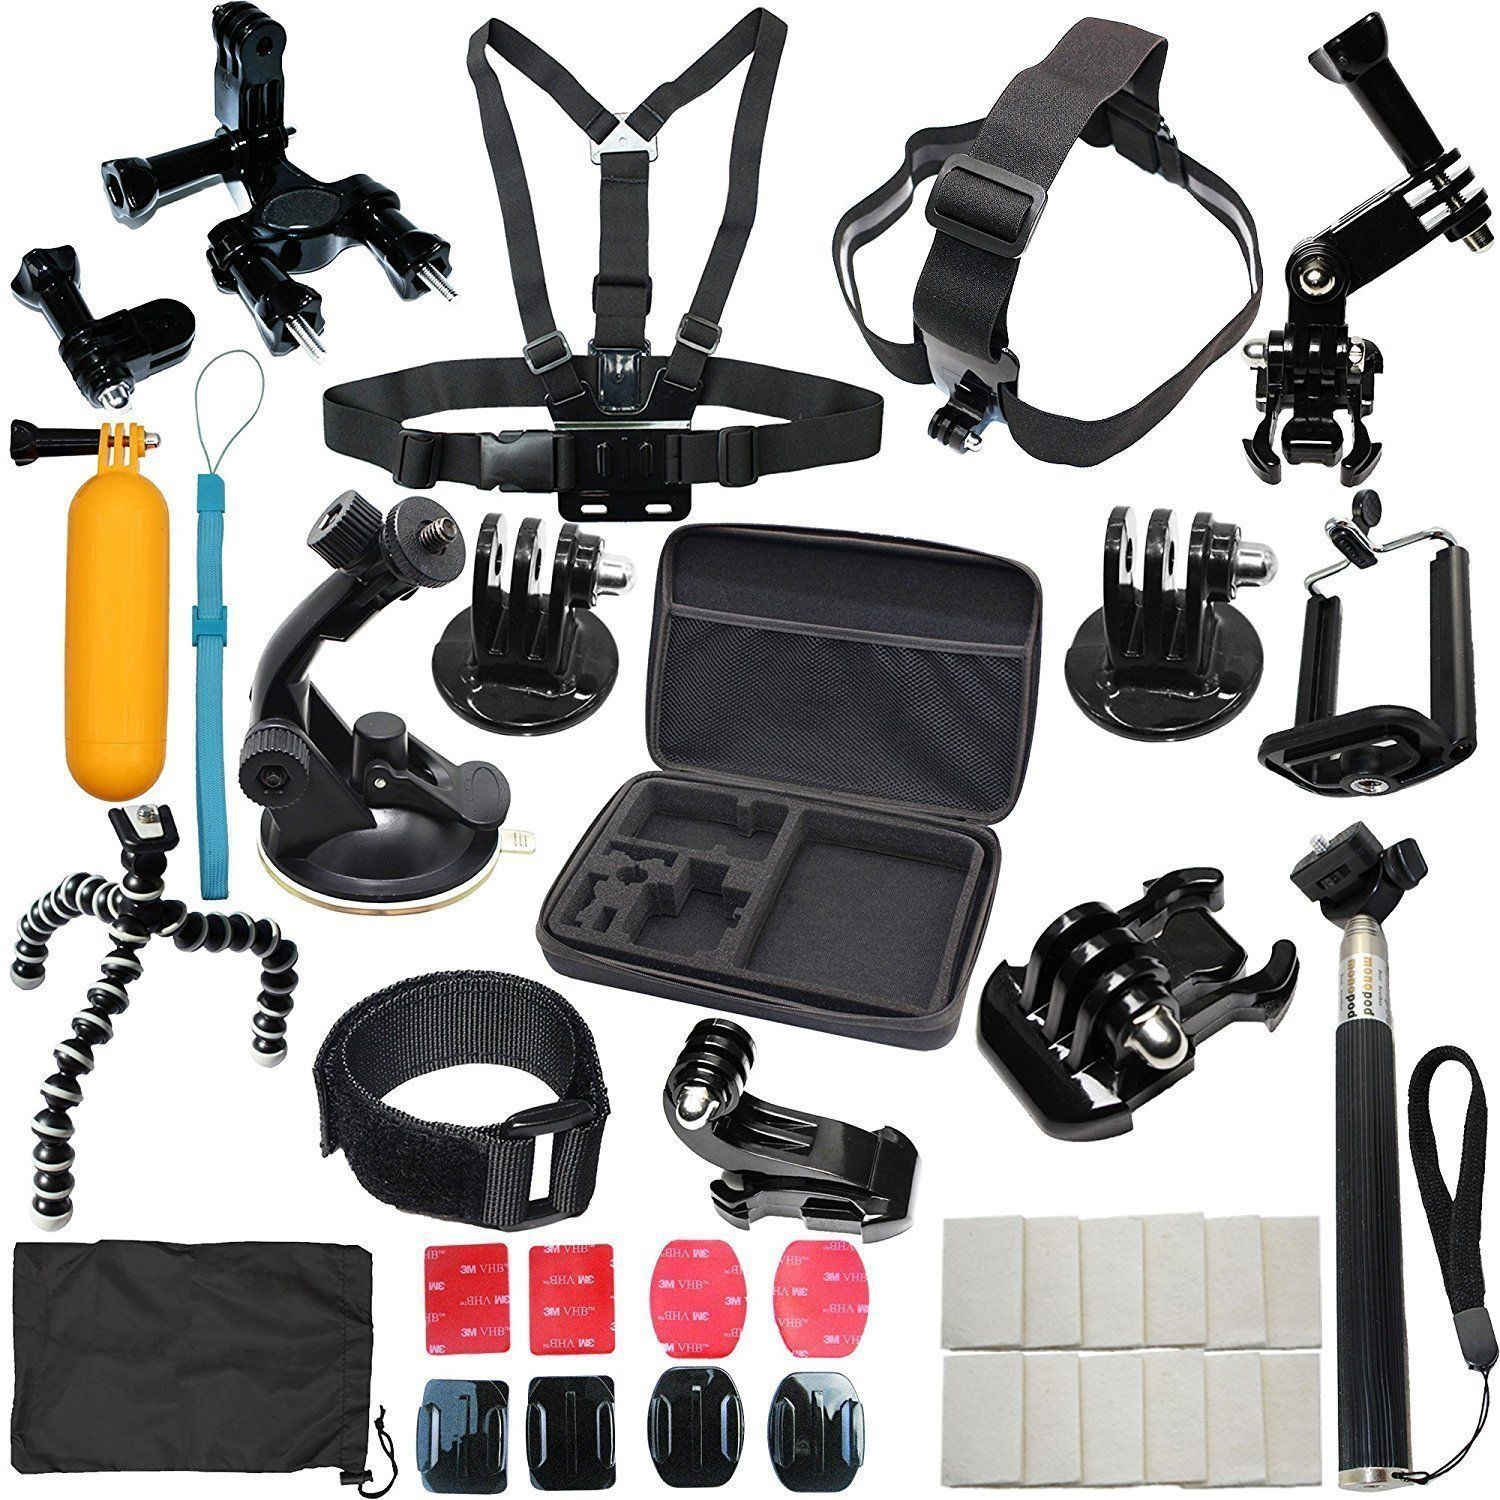 Fr Gopro Hero 7 5 4 6 3 2 Session Accessories Camera Mount Suction Cup Stick Kit Gopro Hero 5 Gopro Gopro Hero